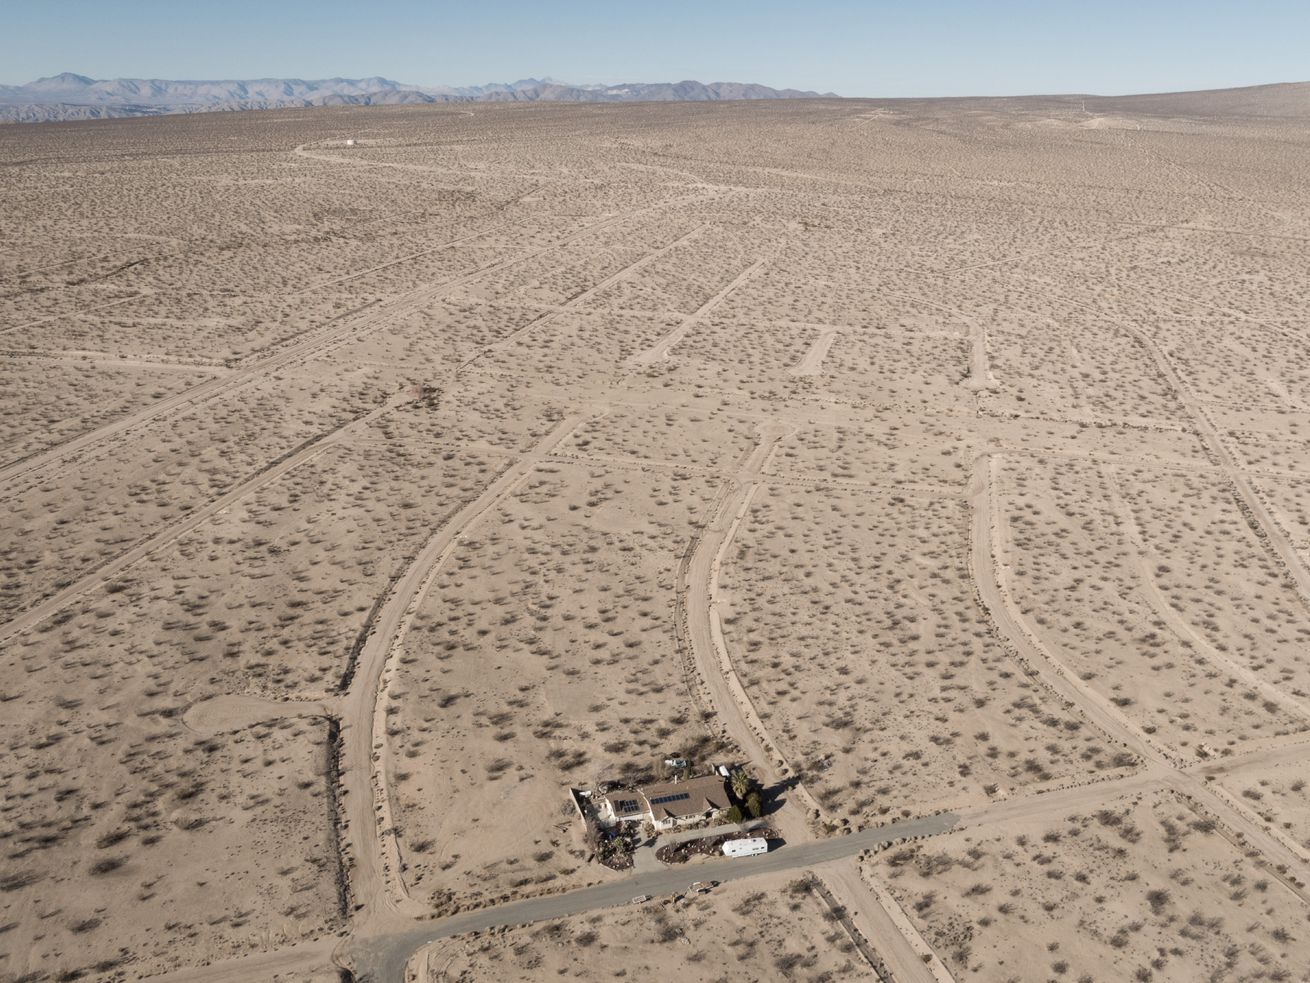 This California ghost town began with utopian visions